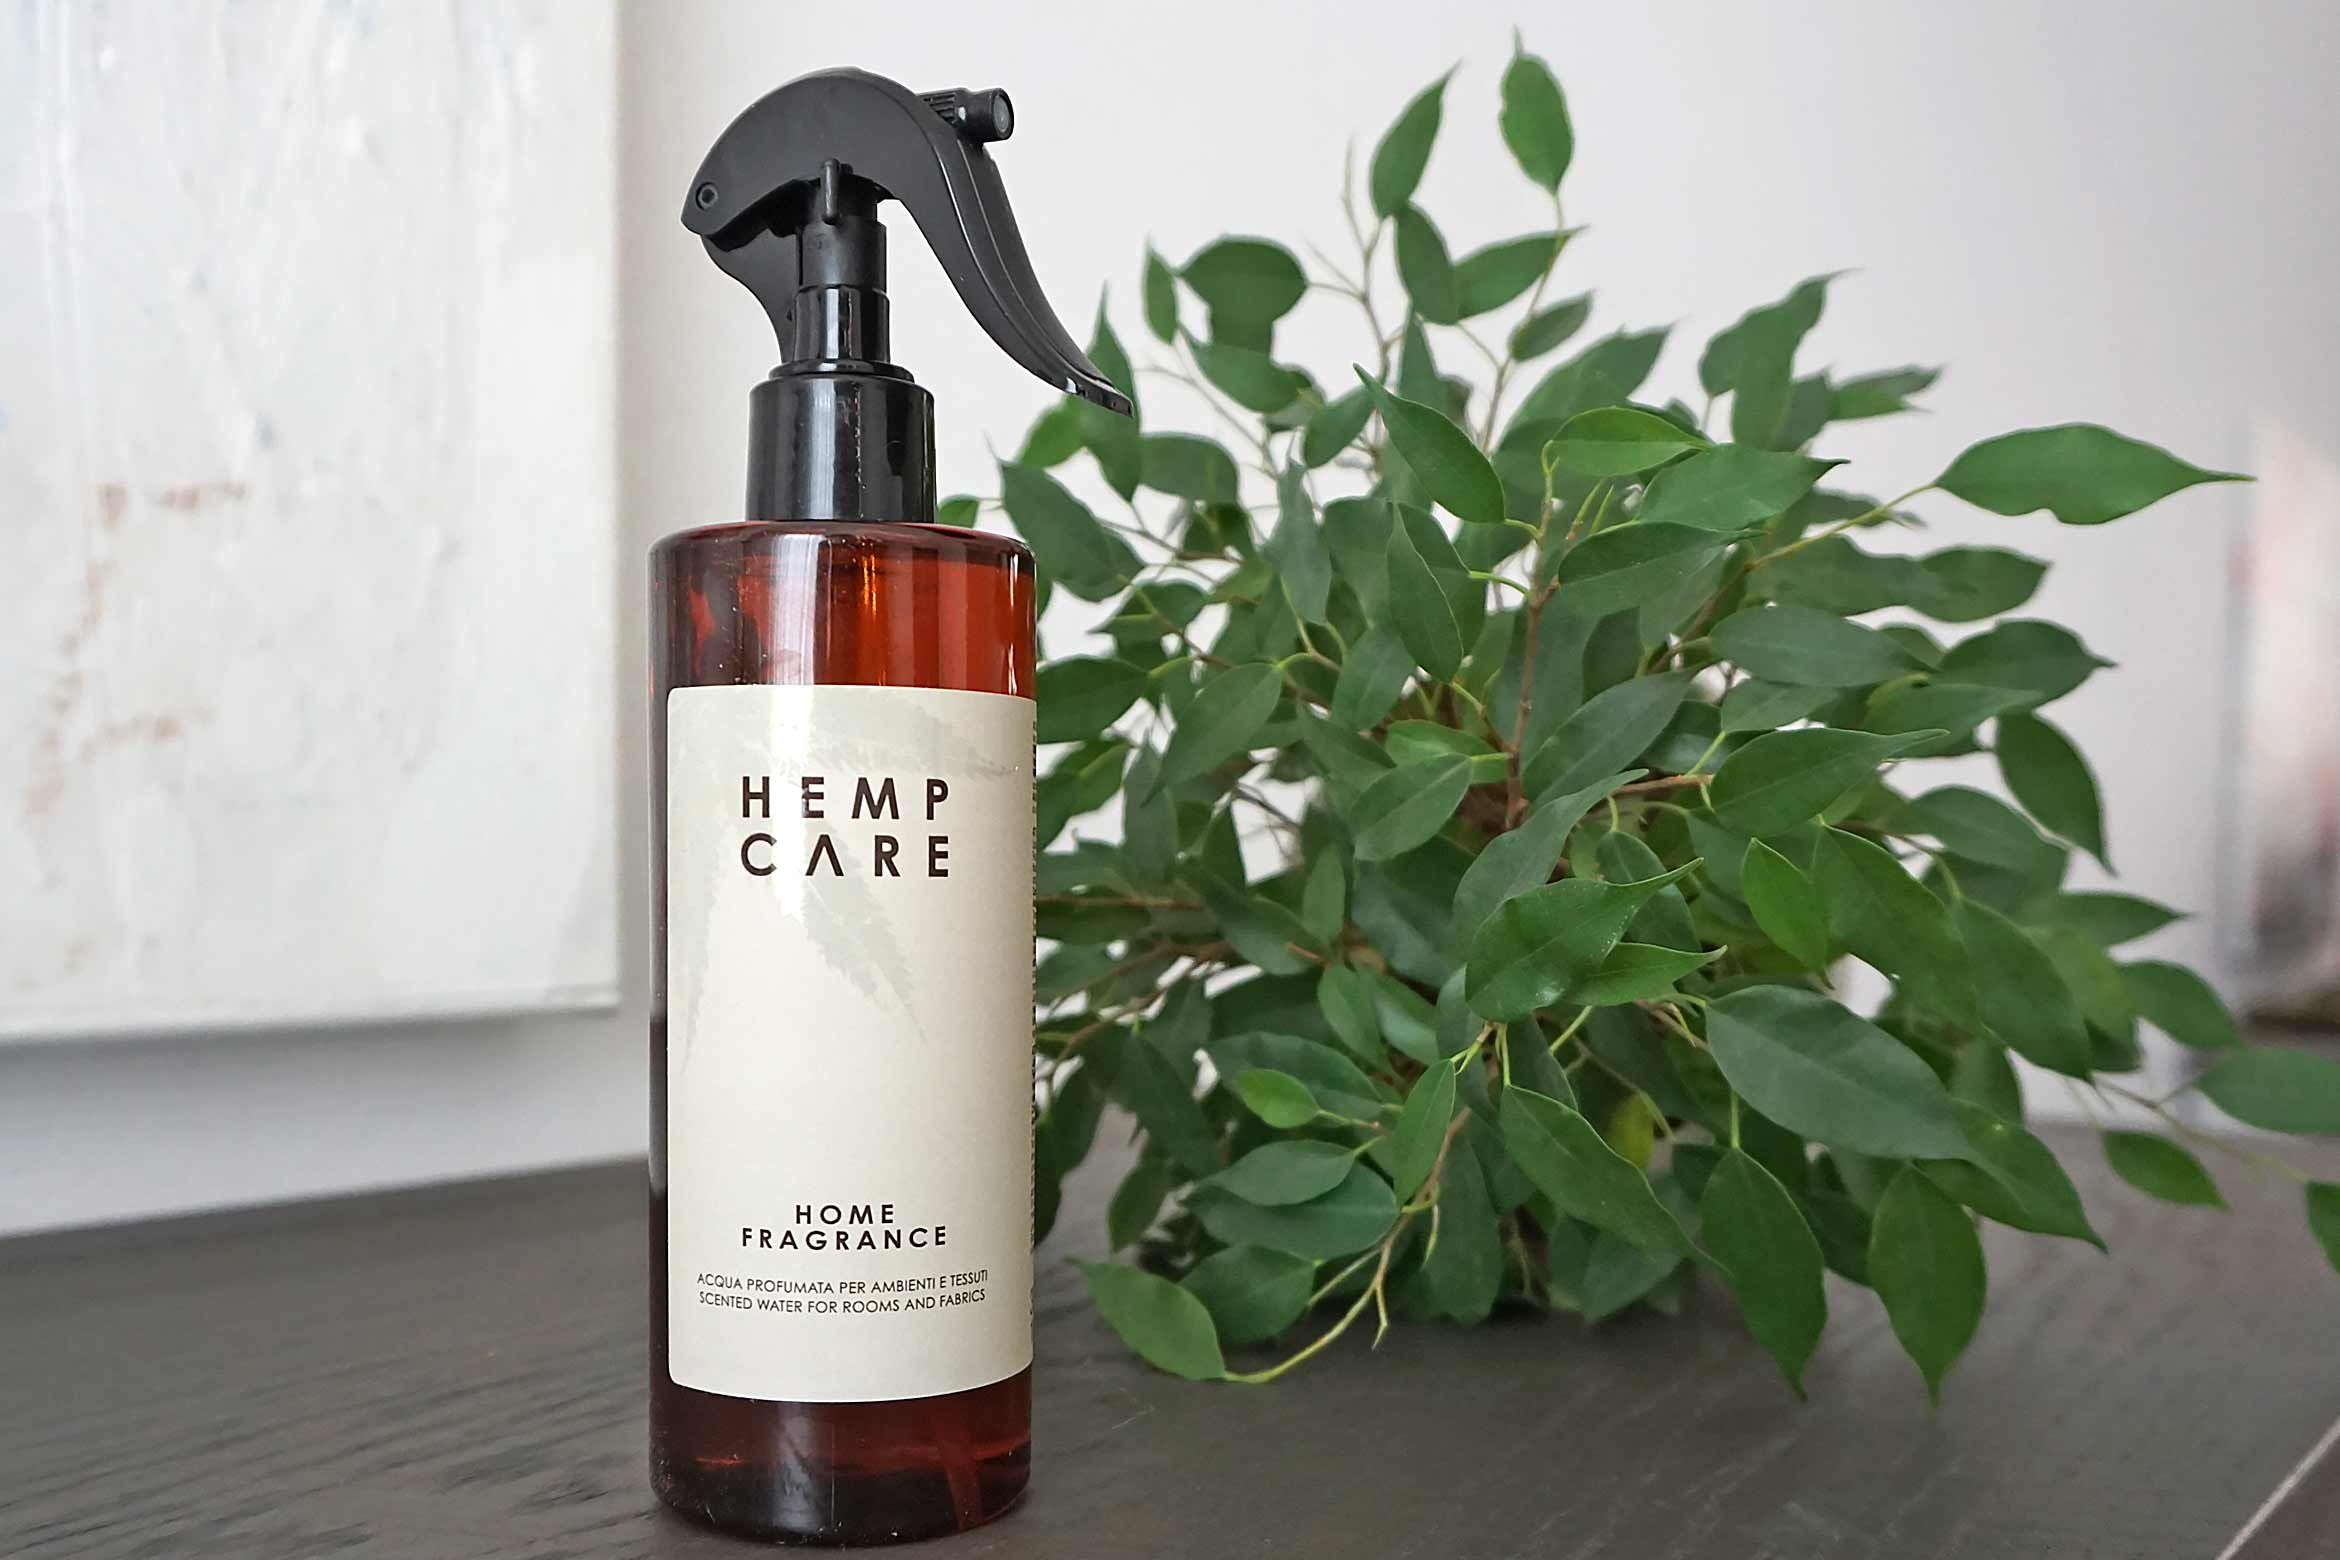 hemp care home fragrance review